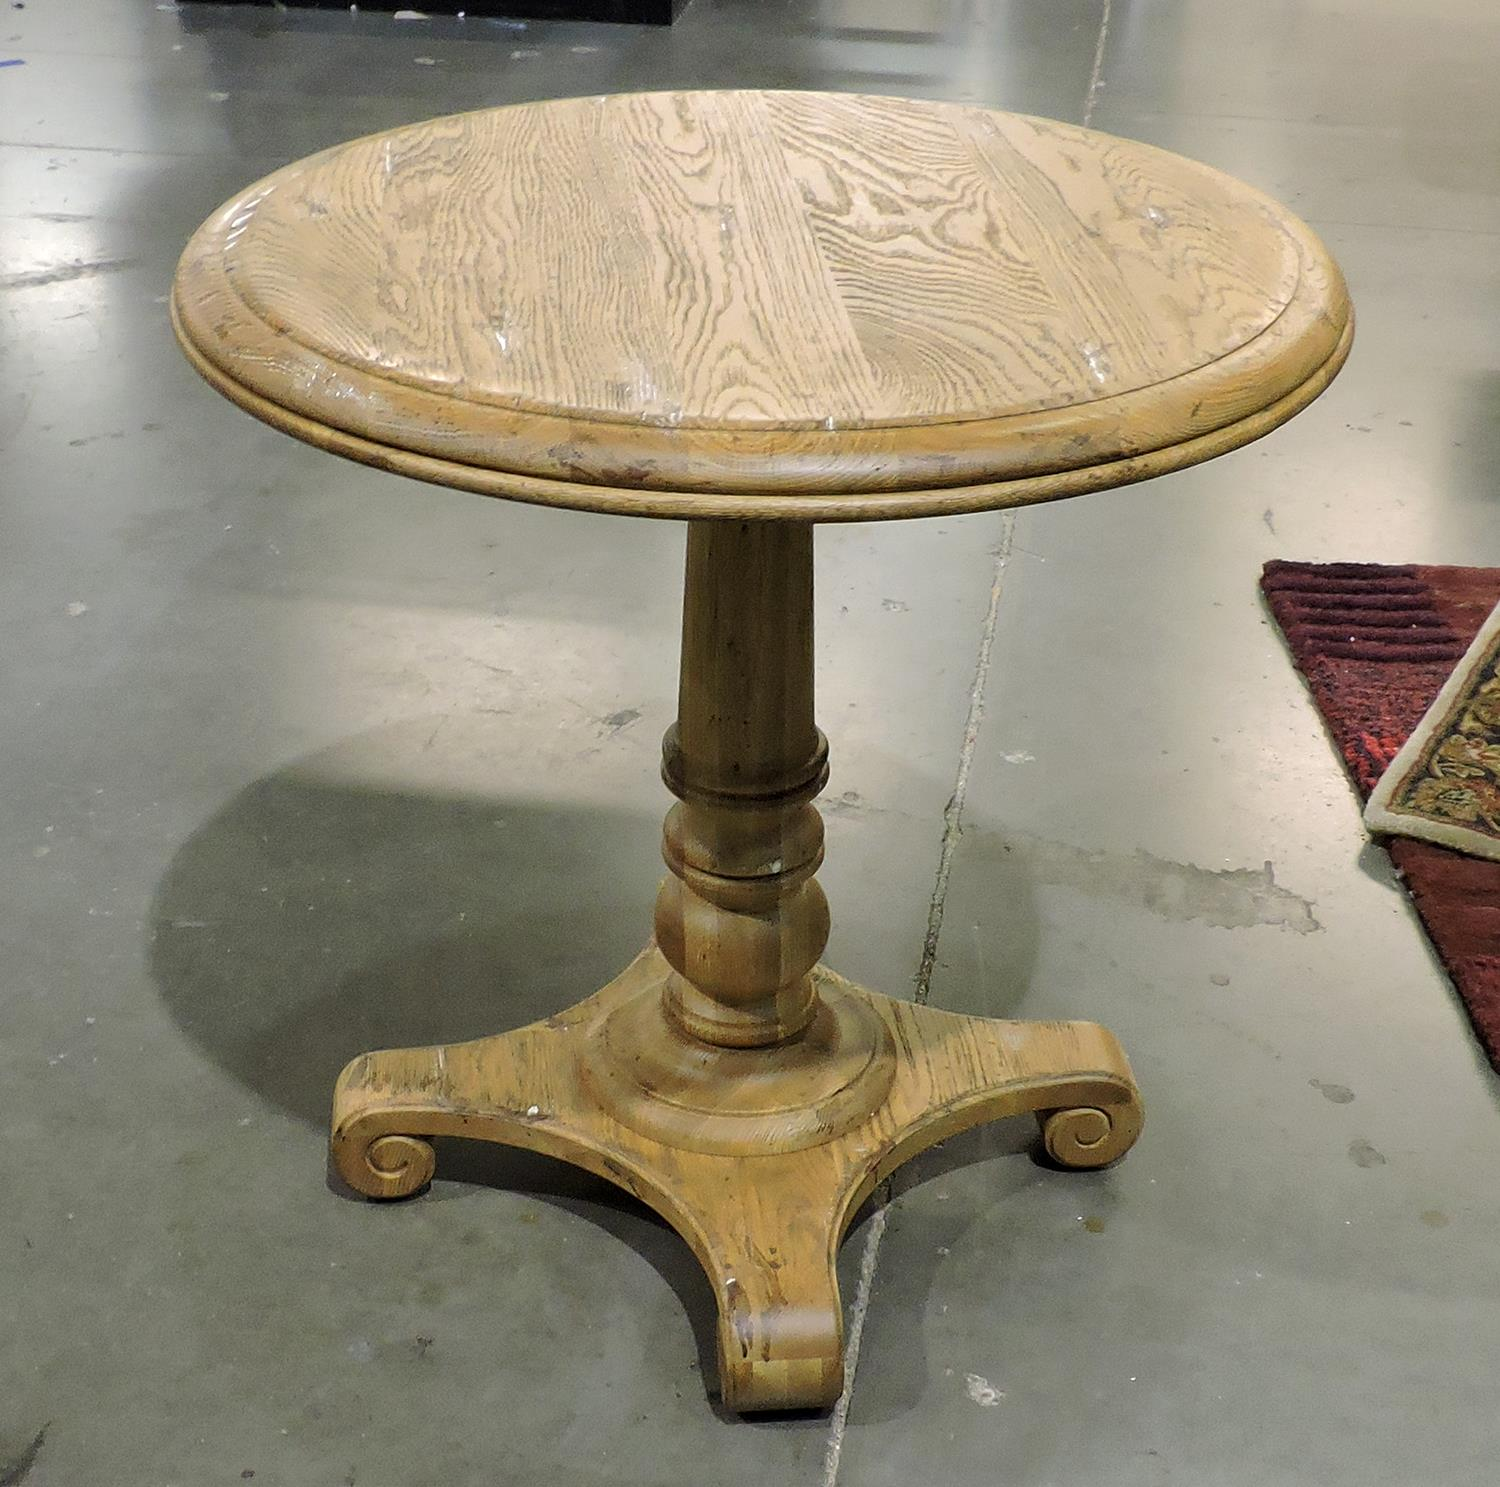 Kincaid Furniture Clearance Brienz Table - Item Number: 865650849